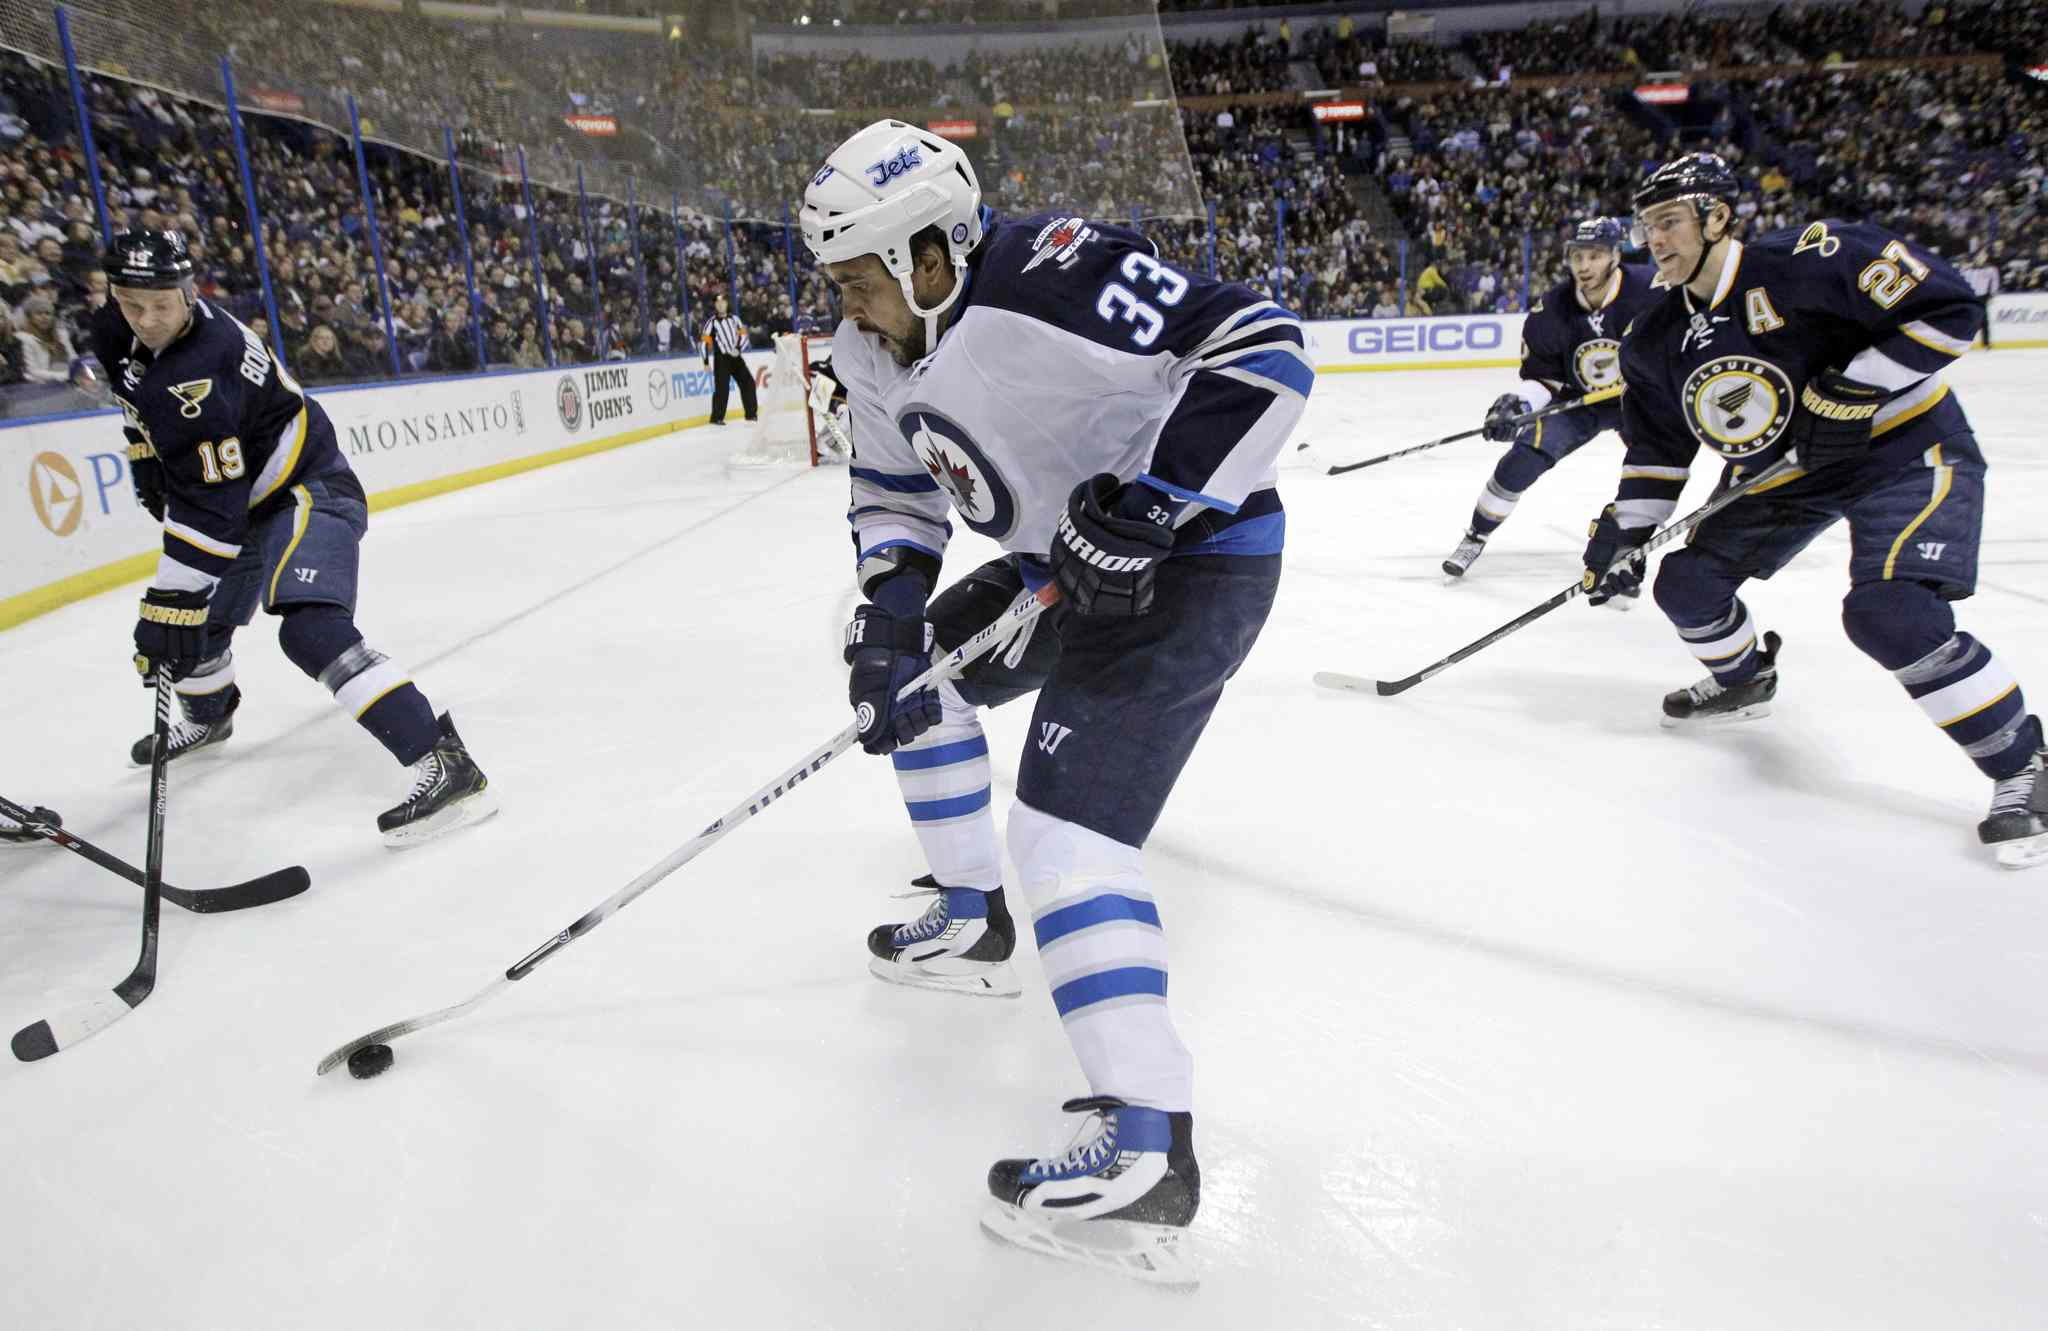 Winnipeg Jets' Dustin Byfuglien (33) controls the puck as St. Louis Blues' Jay Bouwmeester (19), Maxim Lapierre (40) and Alex Pietrangelo (27) defend during the first period.